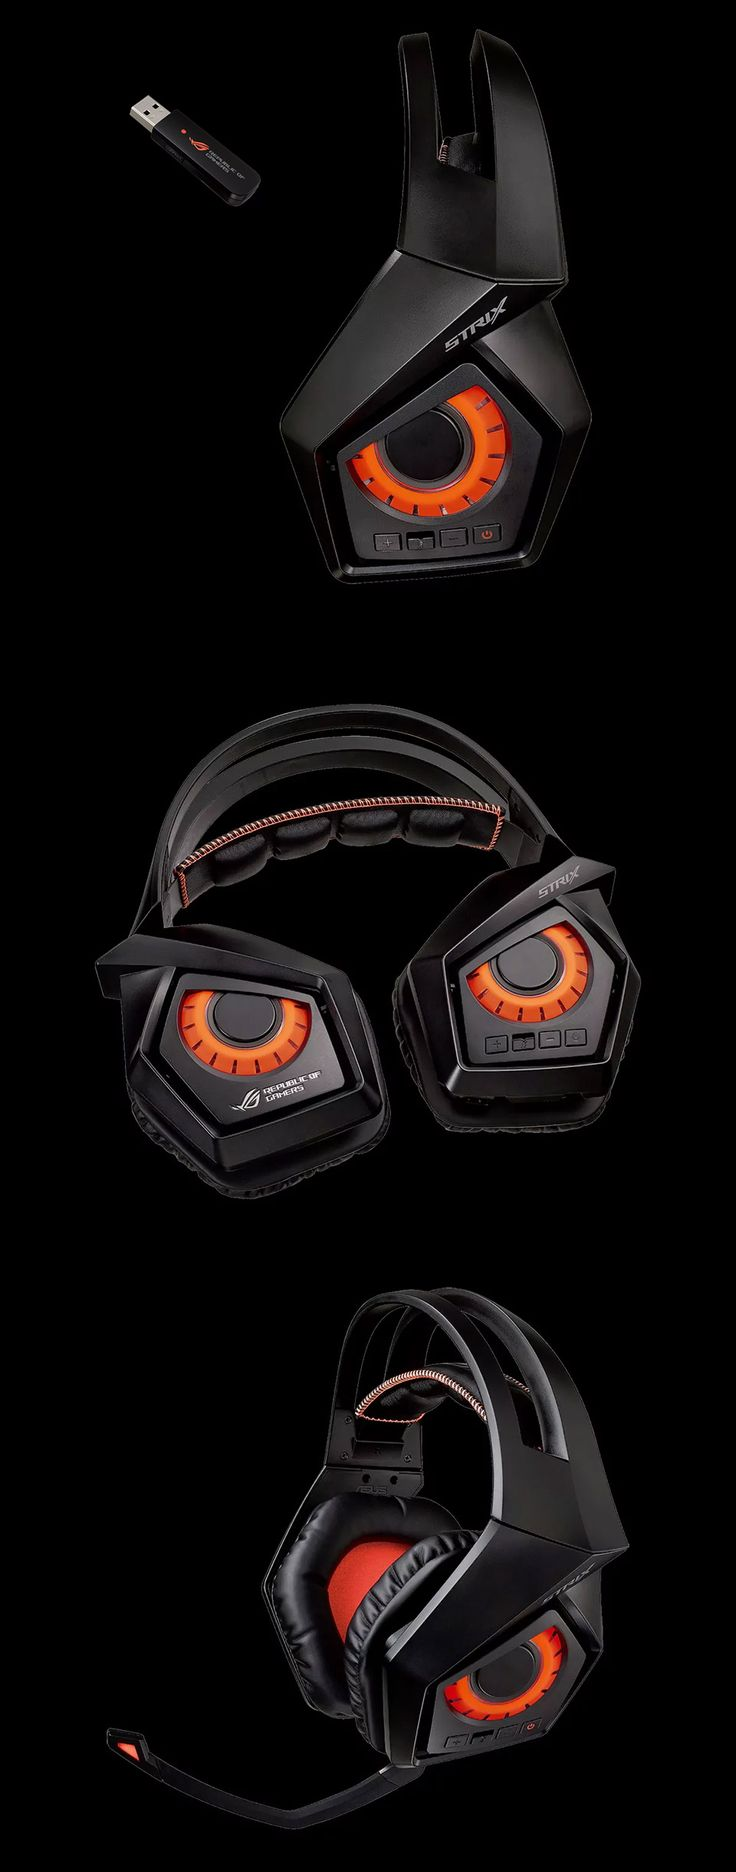 ASUS ROG Strix Wireless 7.1 Gaming Headset [ROG-STRIX-WIRELESS] : PC Case Gear